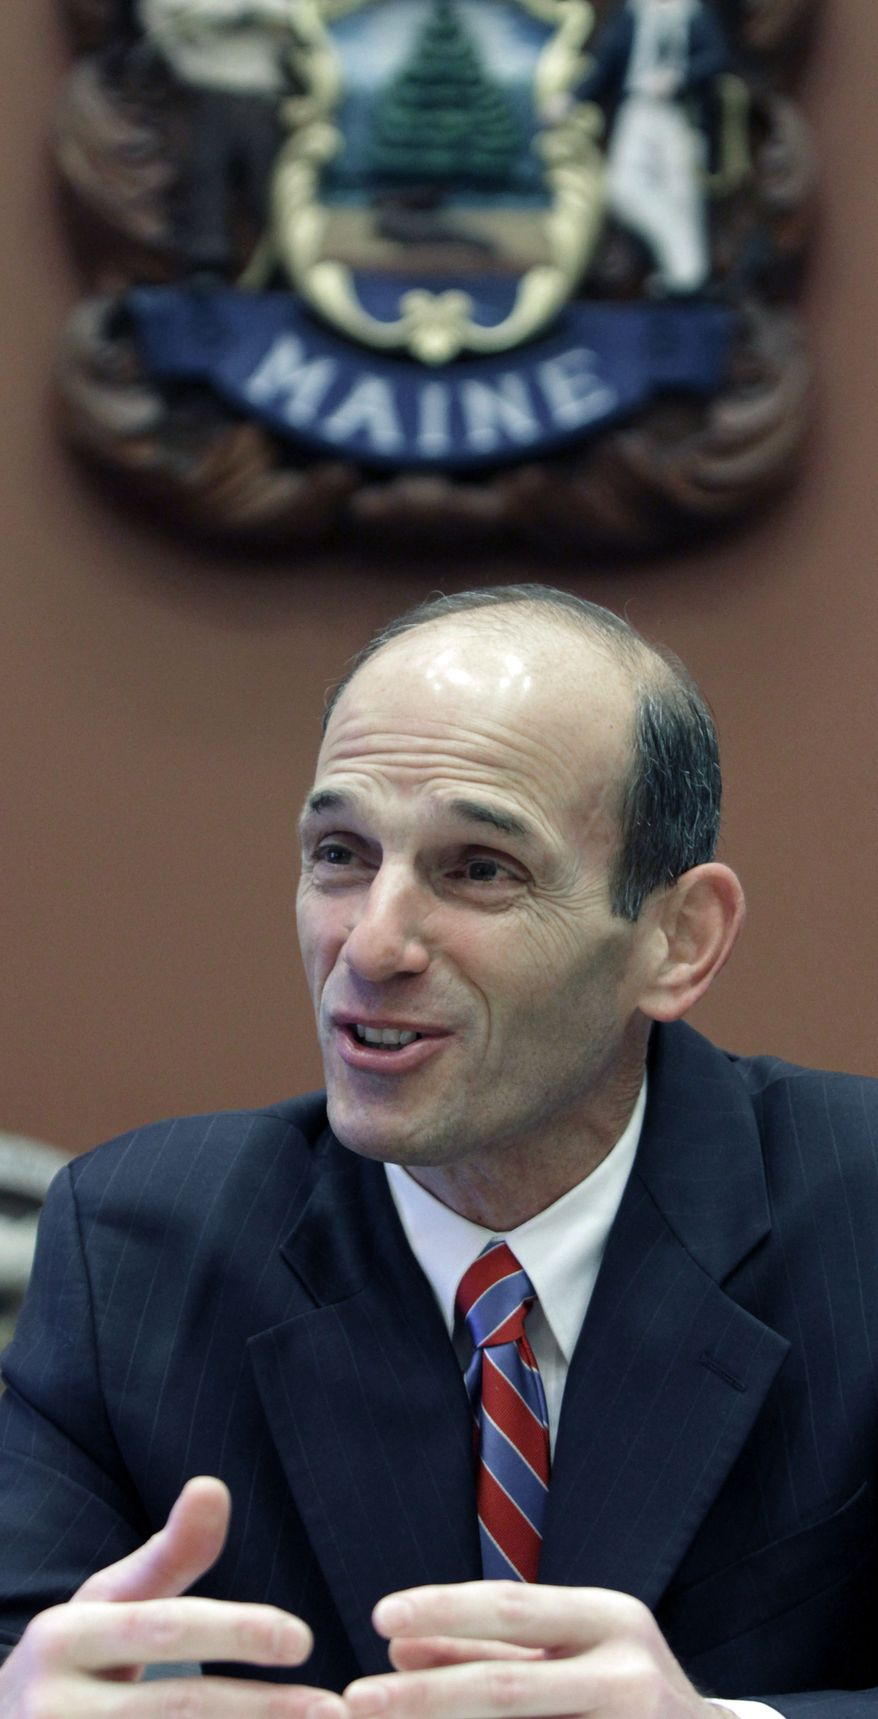 ** FILE ** Then-Gov. John Baldacci answers questions during an interview in his office at the Statehouse in Augusta, Maine, in December 2010. (AP Photo/Pat Wellenbach)